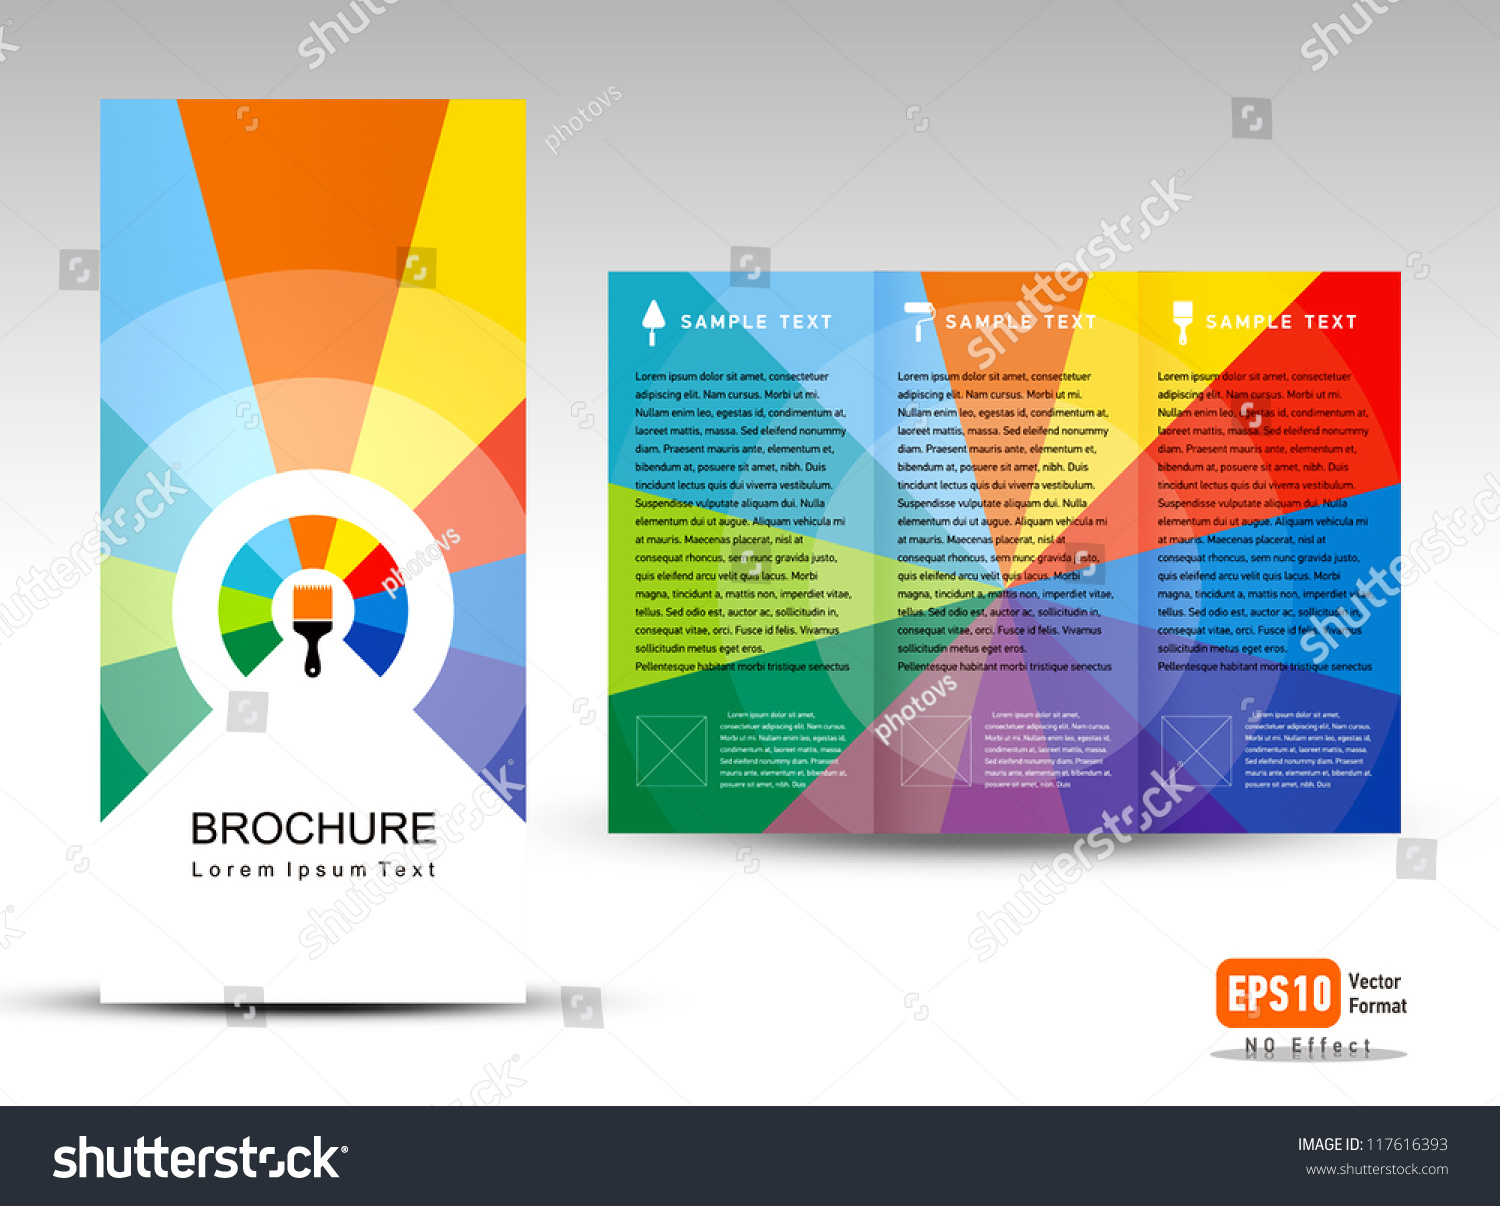 creative brochure templates - creative design vector brochure trifold layout stock